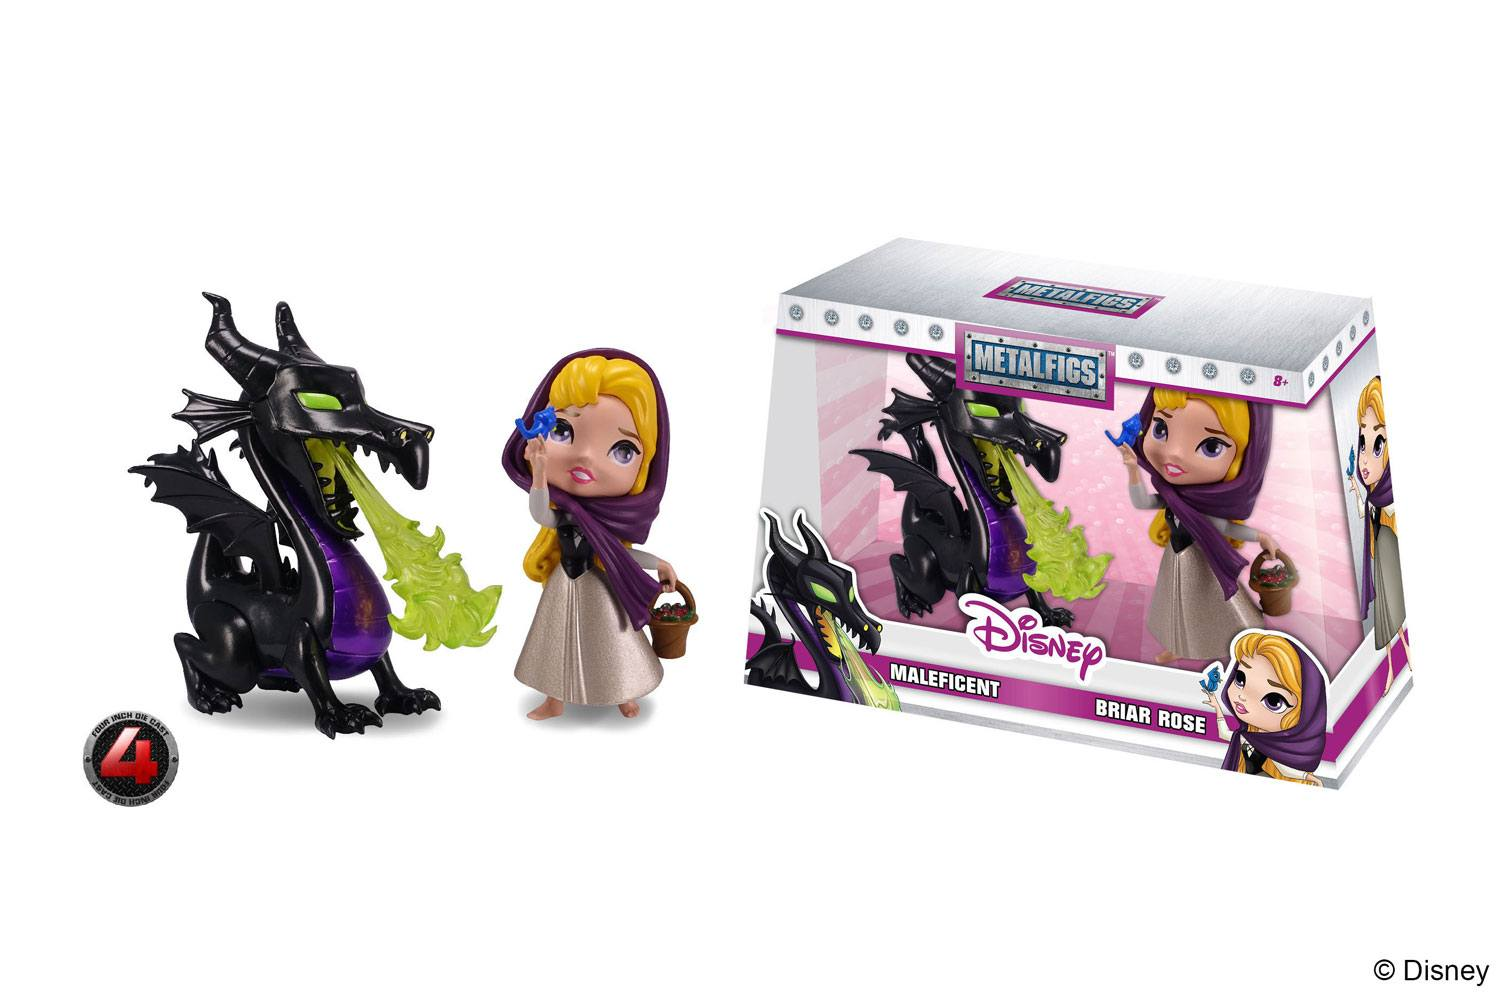 Disney 2 Pack Maleficent And Briar Rose Metalfigs Diecast Mini Figures 10 Cm Pop Addiction Funko Pop Collectables Merchandise Comics And